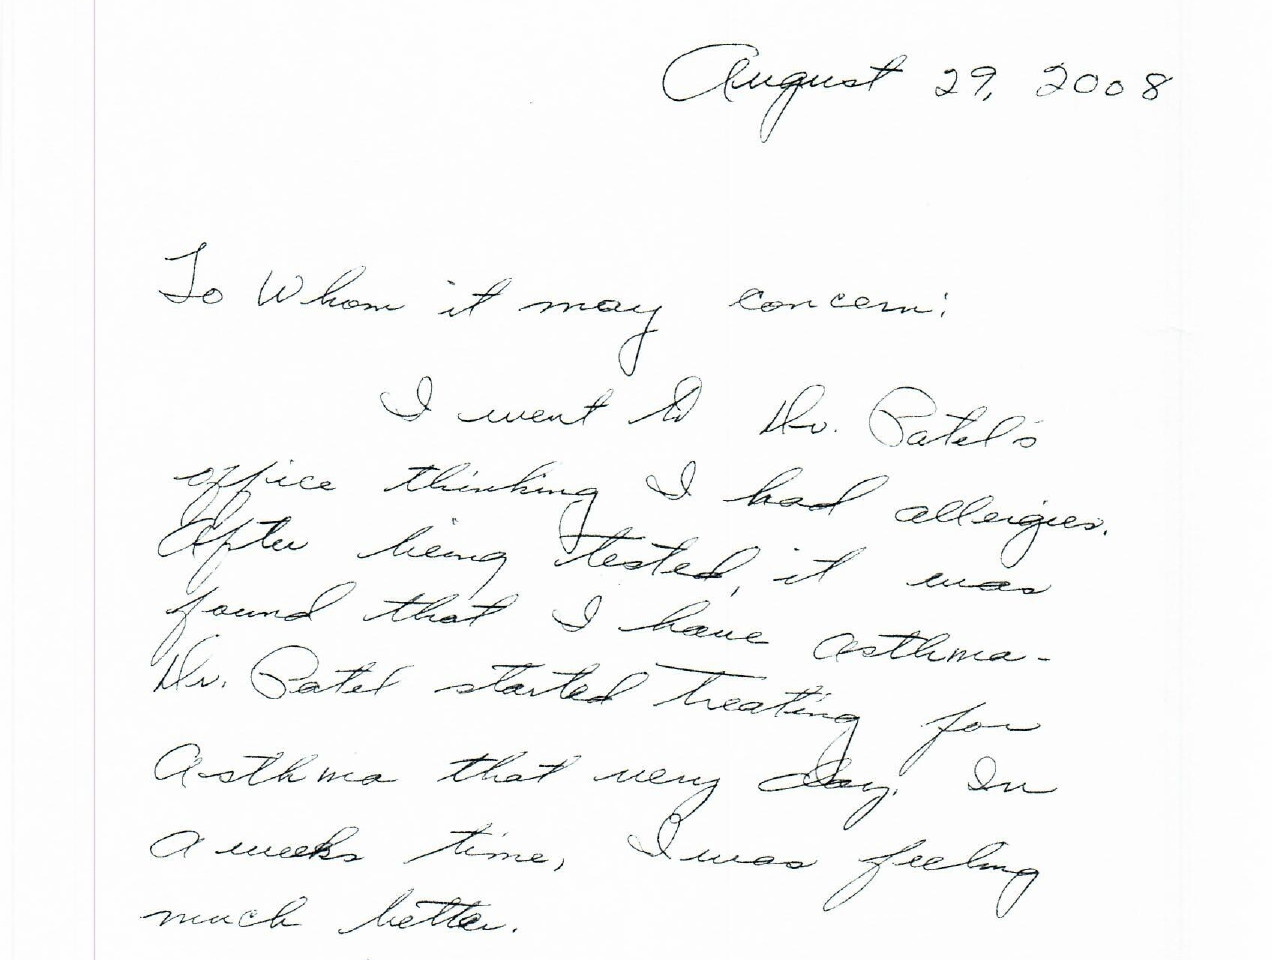 Patient thank you letters3_page-0011.jpg